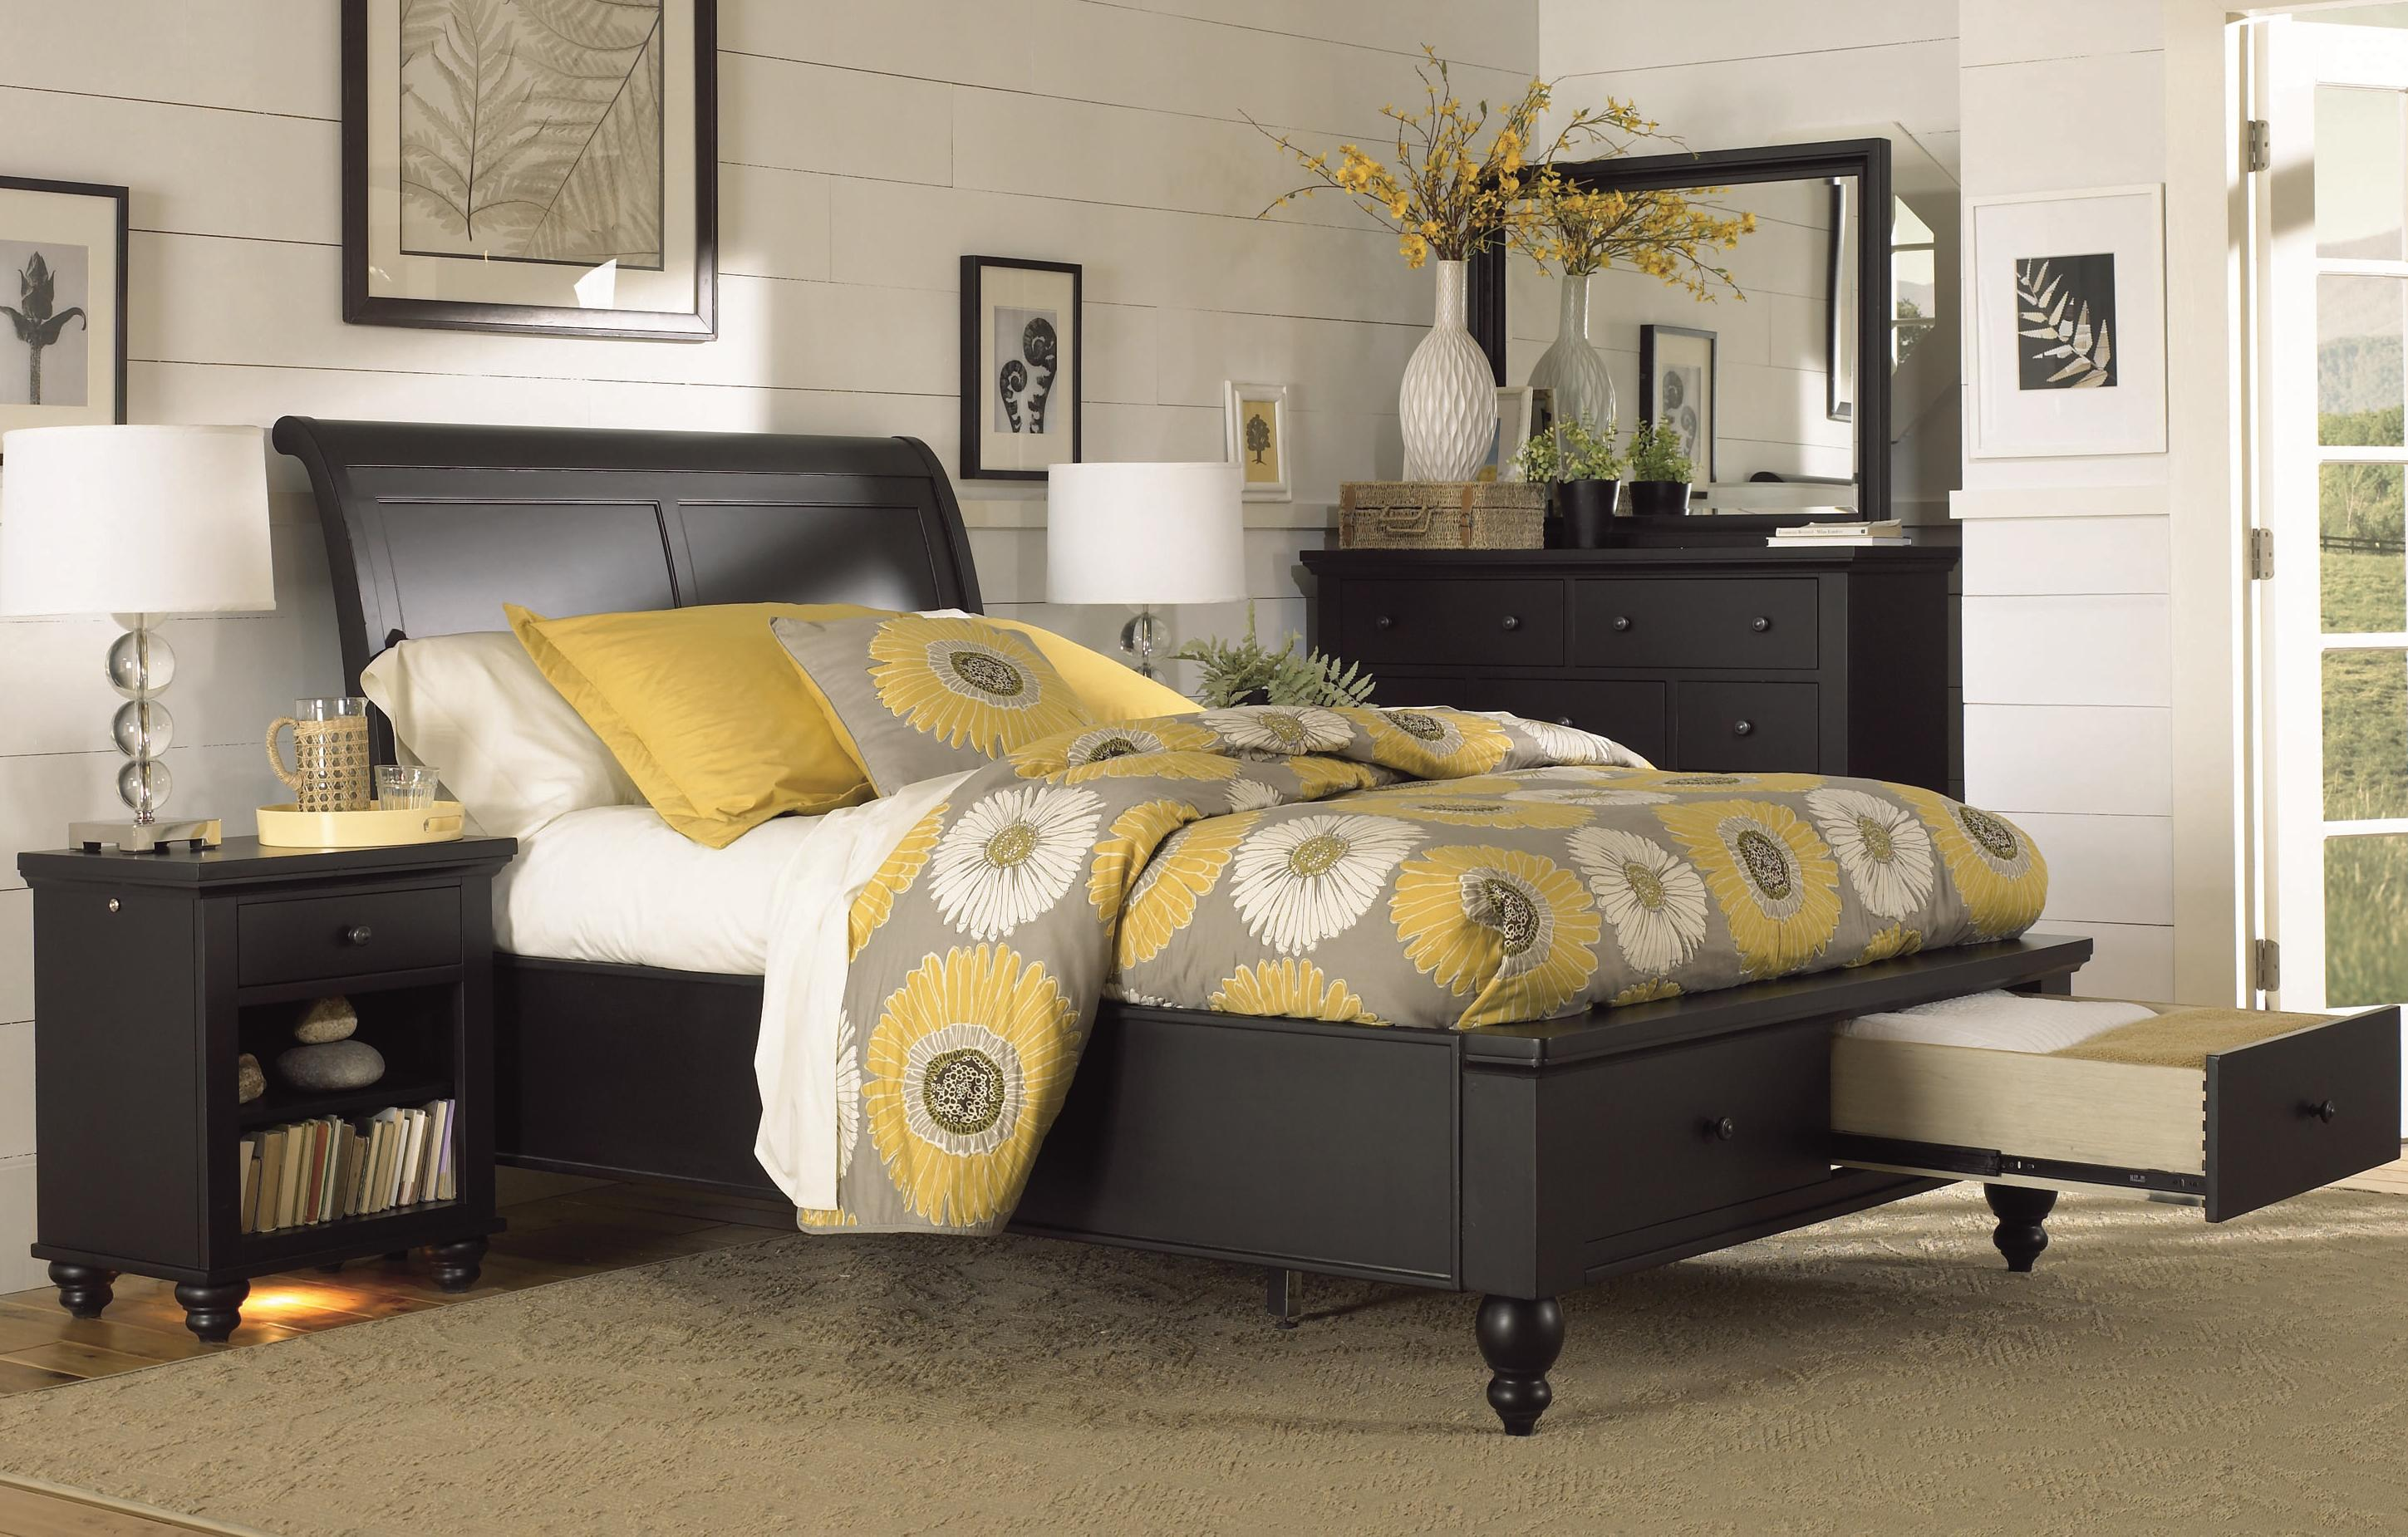 furniture innovative designs aspen home for any room pottery barn cabinet hom sioux falls inexpensive modern macys sofa set grands beckley kirklands accent tables rochester